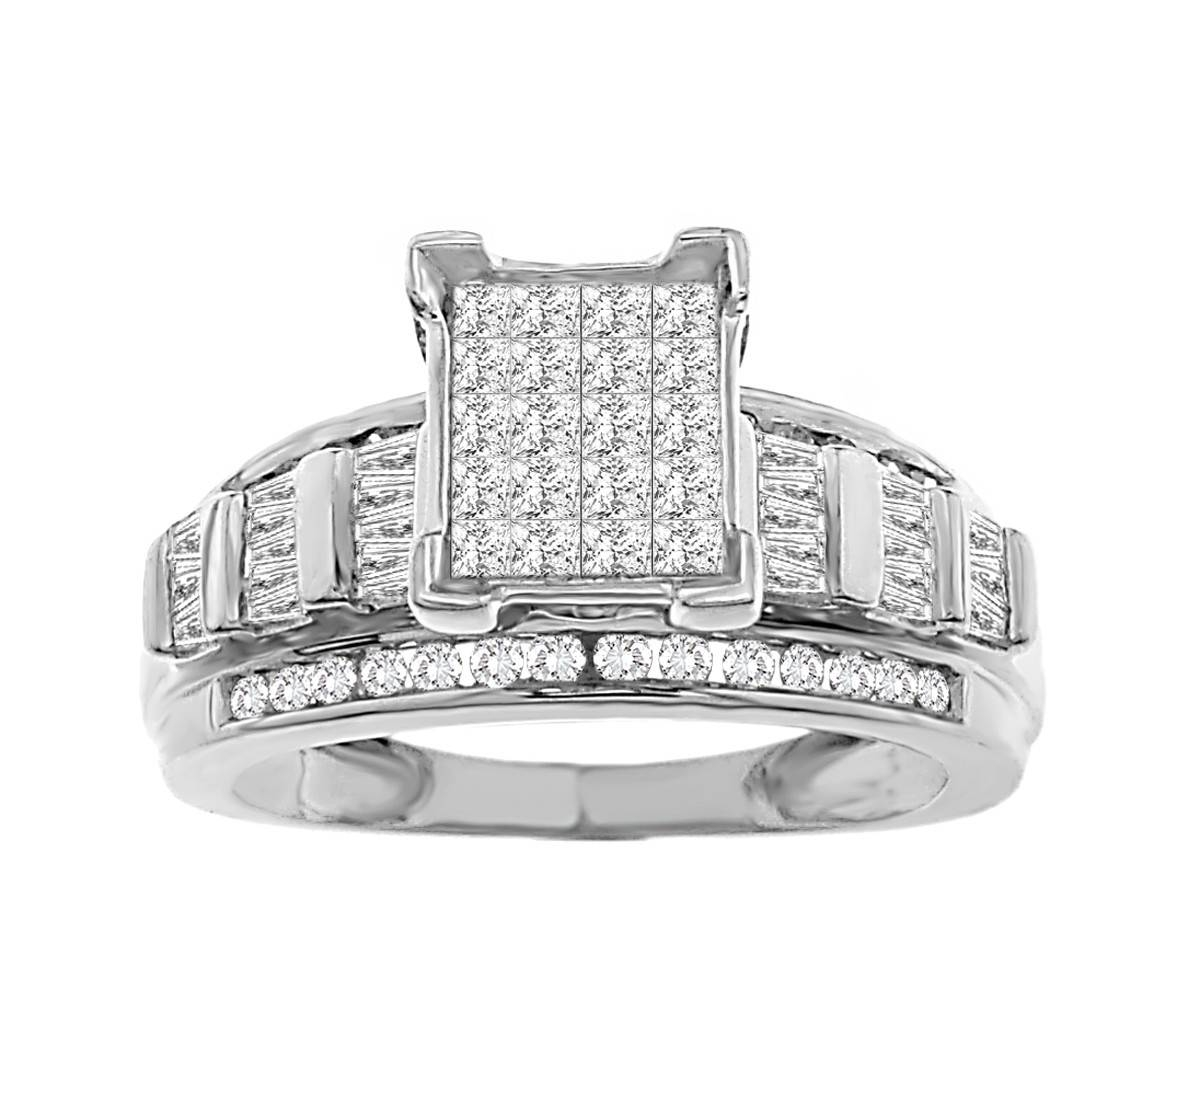 1.00 Tcw Women's Diamond Engagement Ring Set In 10K White Gold Within 10K Diamond Engagement Rings (Gallery 9 of 15)